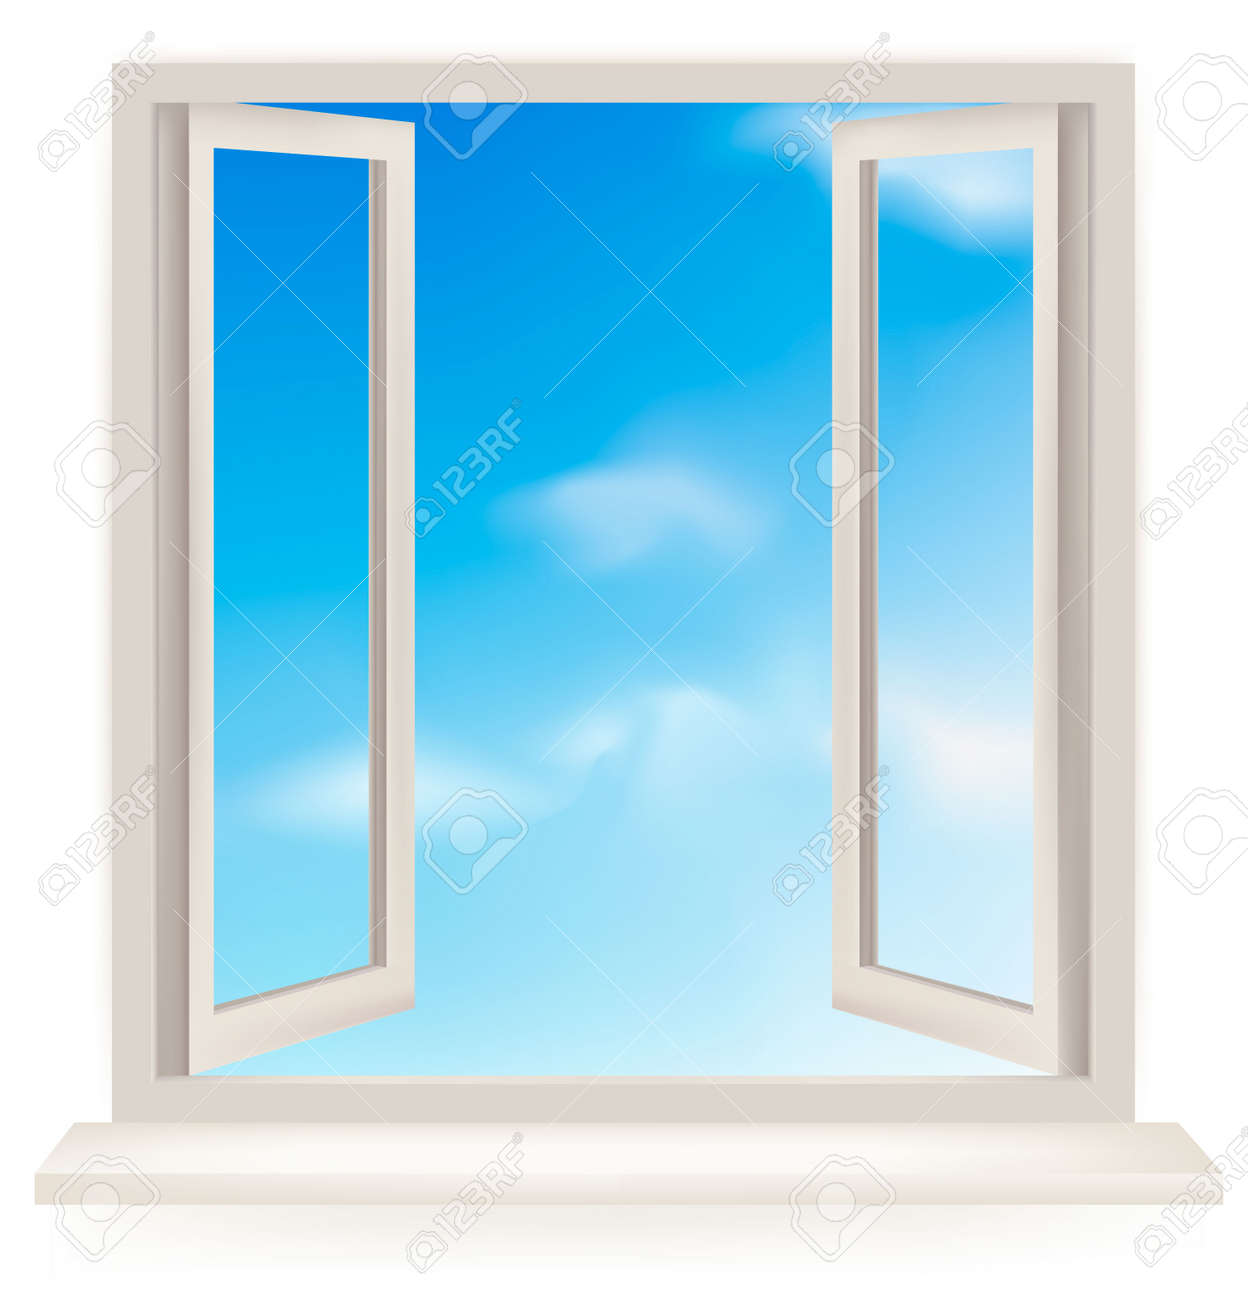 Open window against a white wall and the cloudy sky. - 9304498